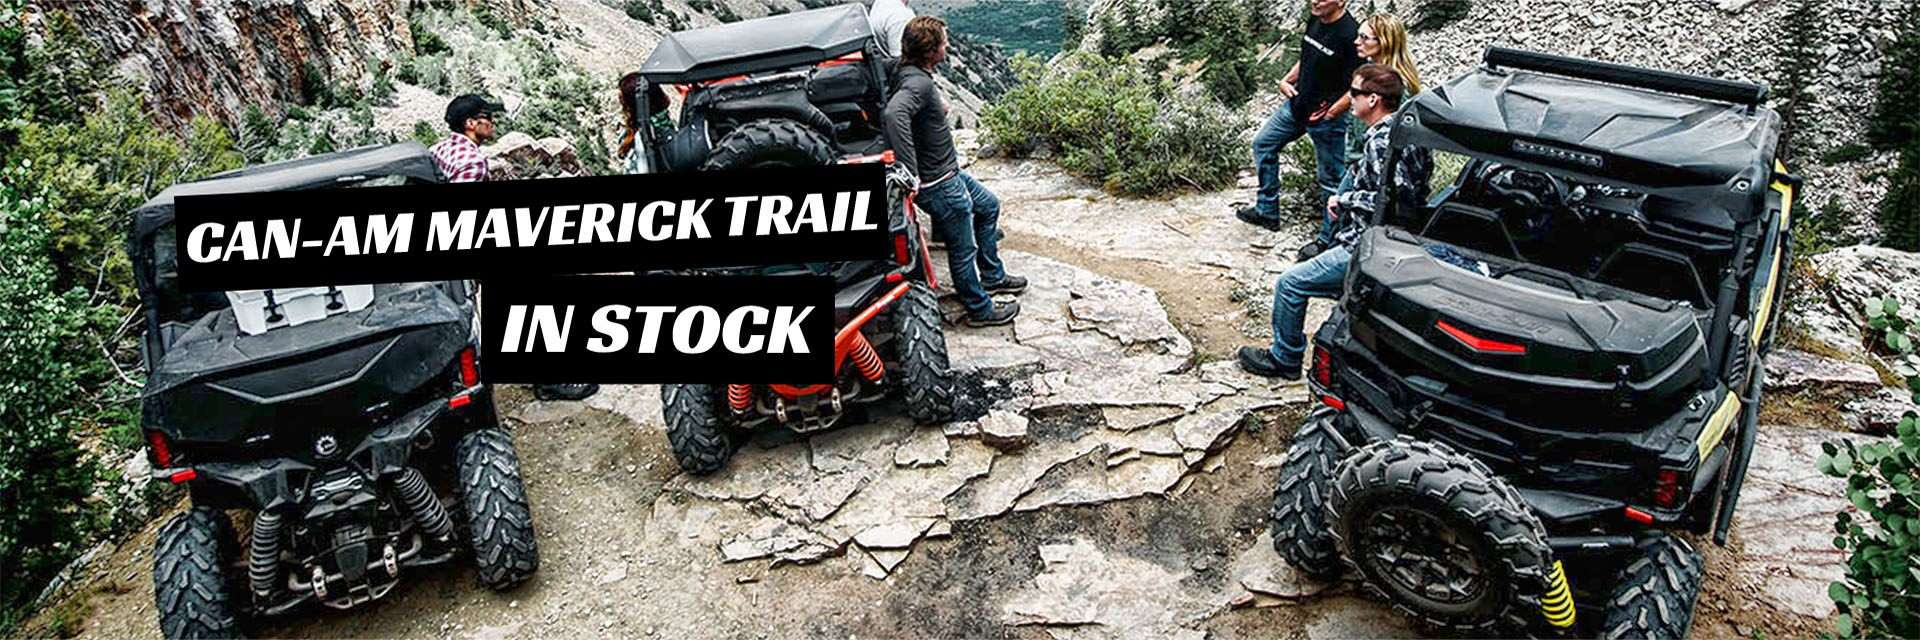 2018 Can-Am Maverick Trail In Stock at Benny's Power in Chester, VT